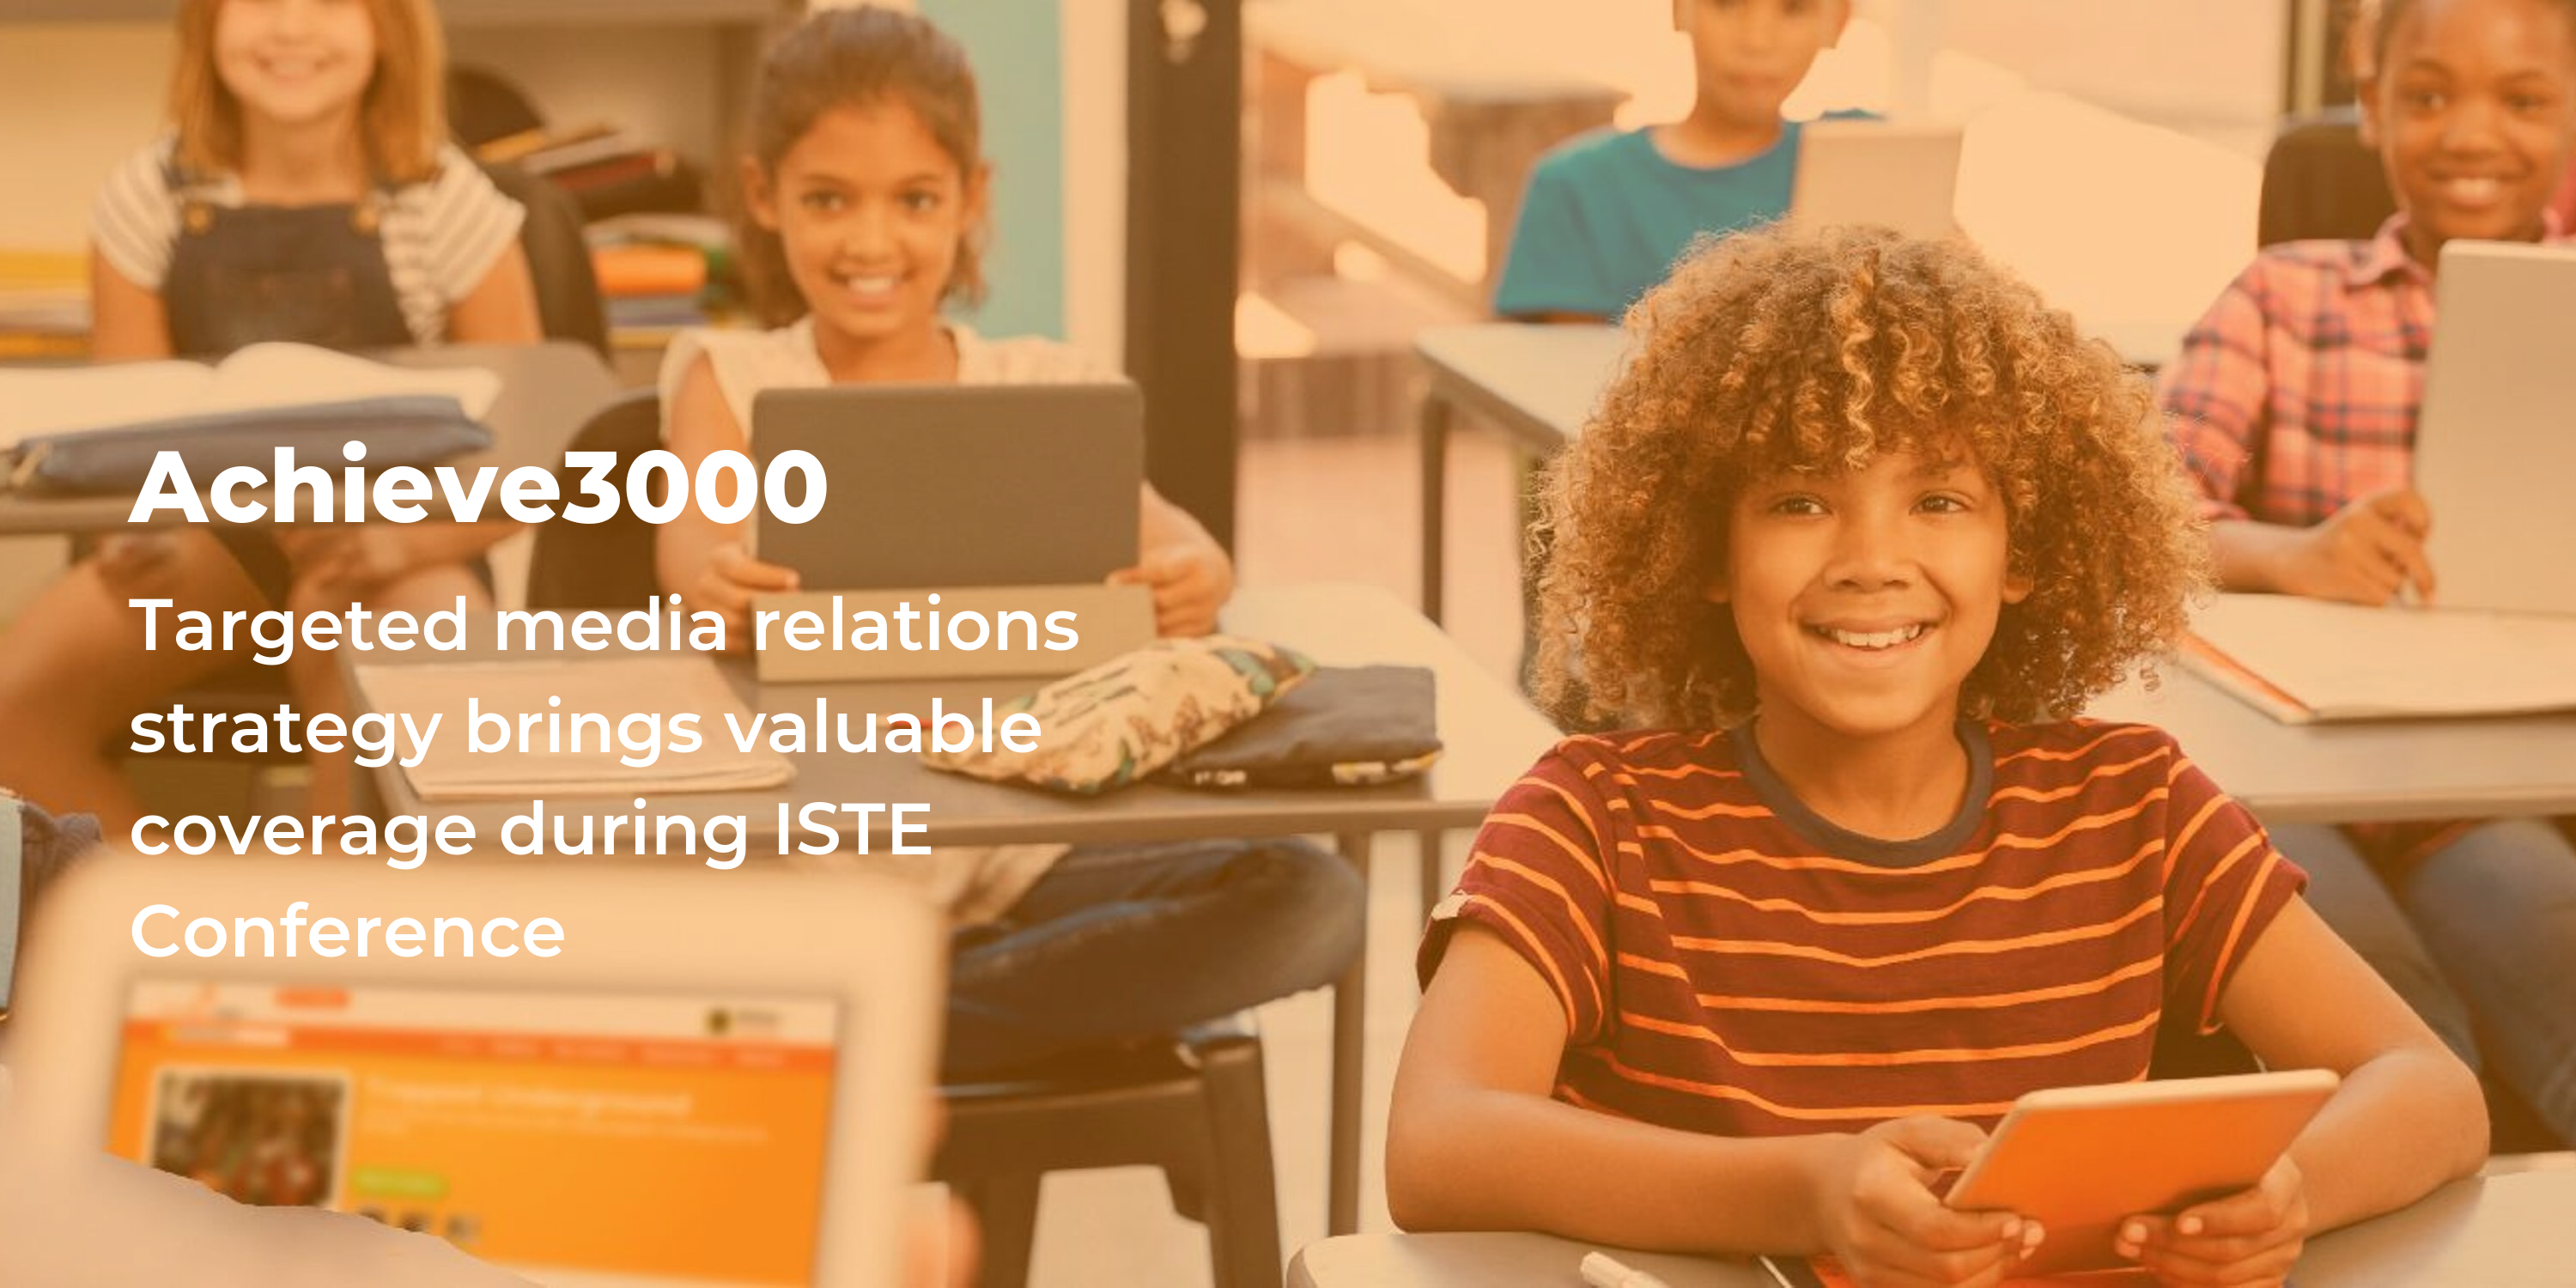 Achieve3000's targeted media relations strategy brings valuable edtech media coverage during ISTE conference